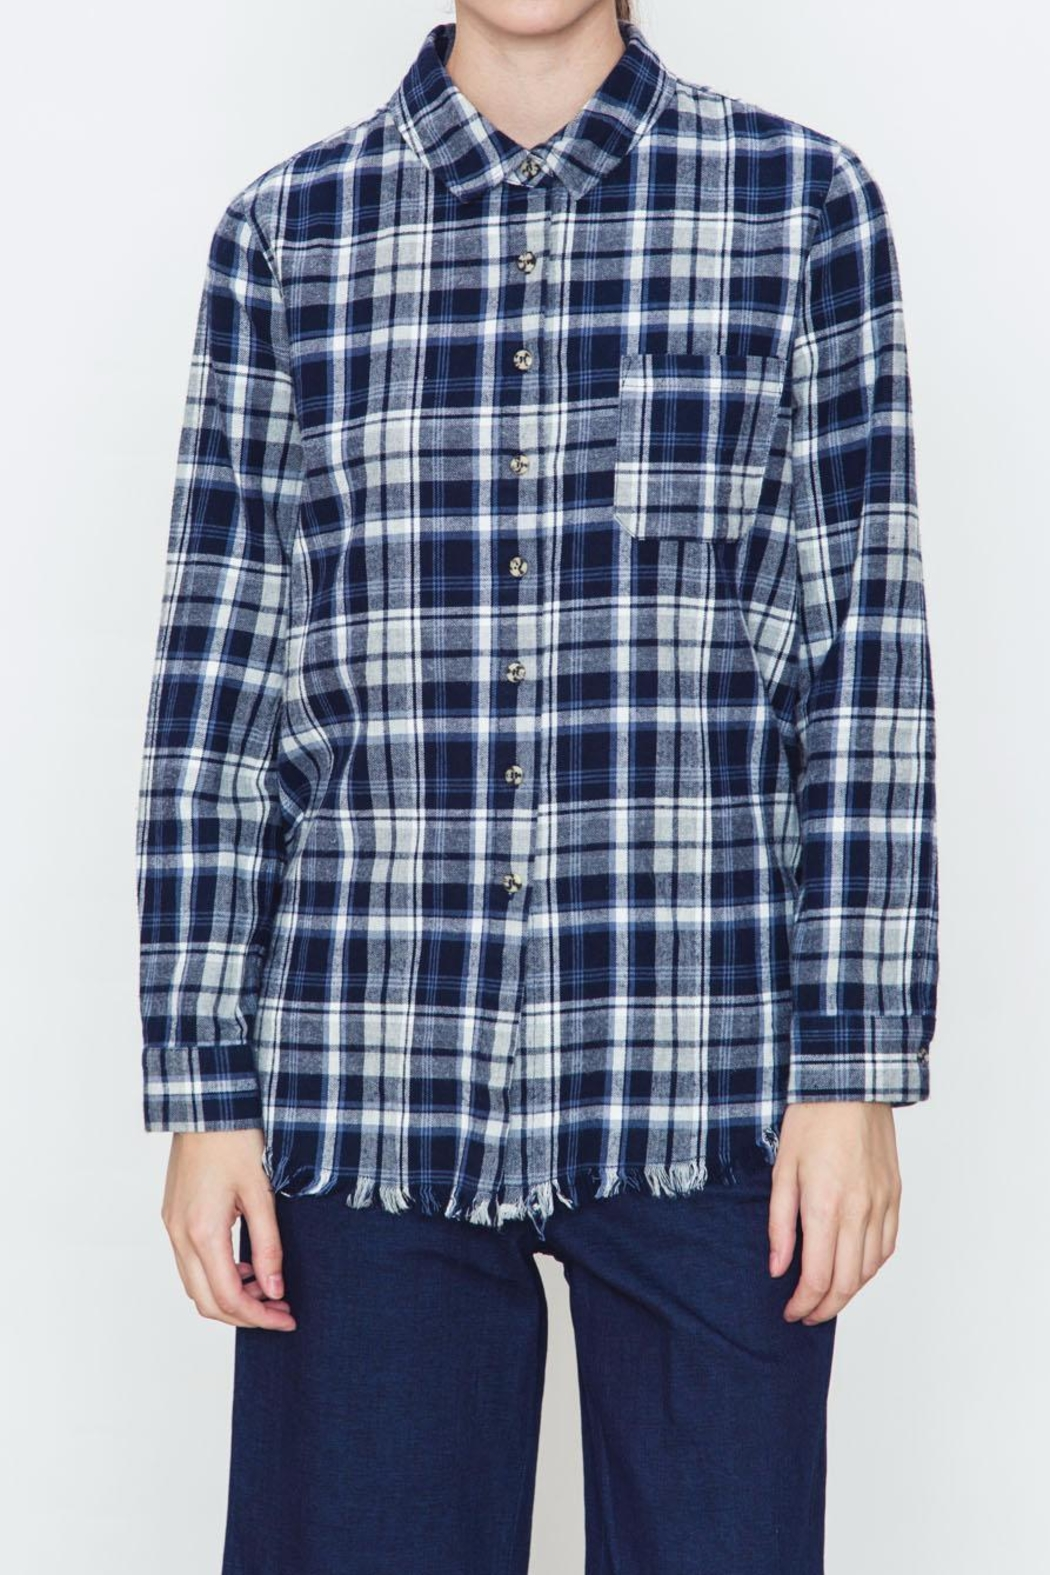 Movint Checkered Blue Plaid Shirt - Main Image